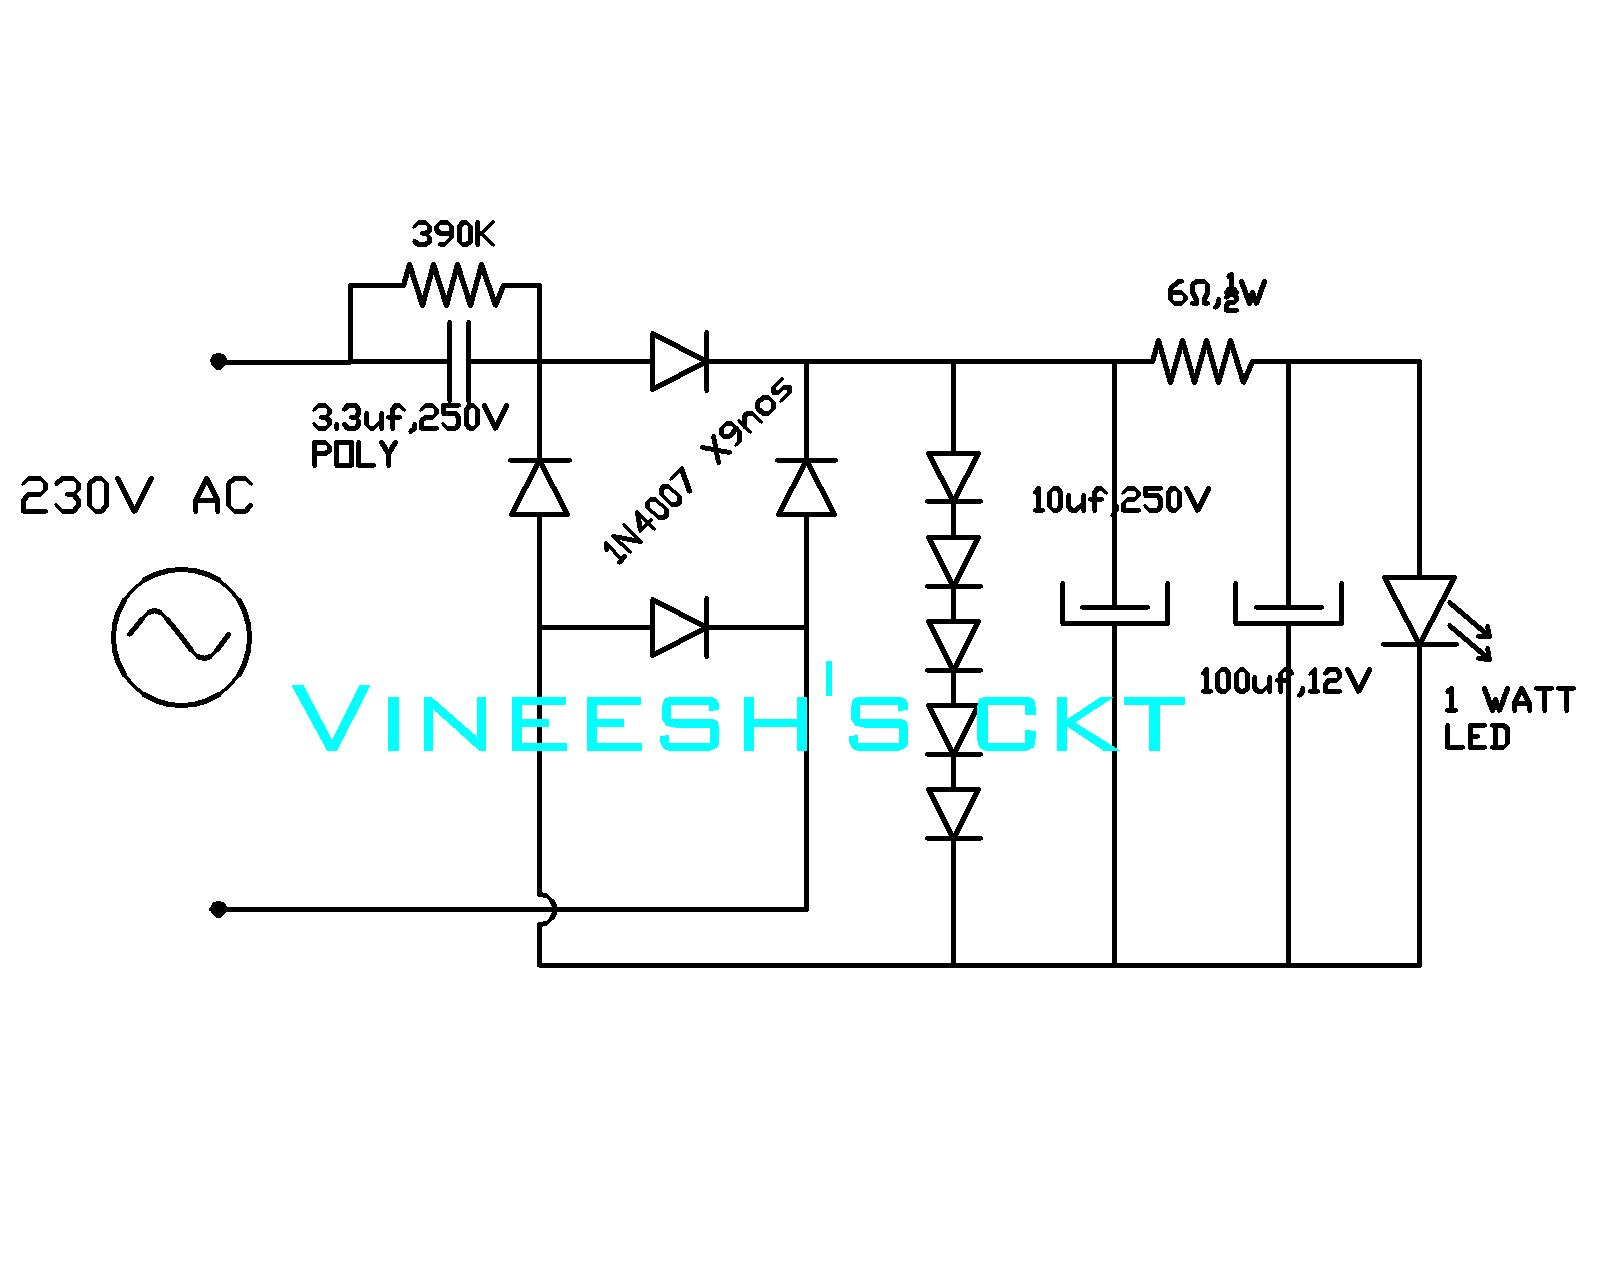 Simple Circuits Vineetron 230v To 1 Watt Led Driver